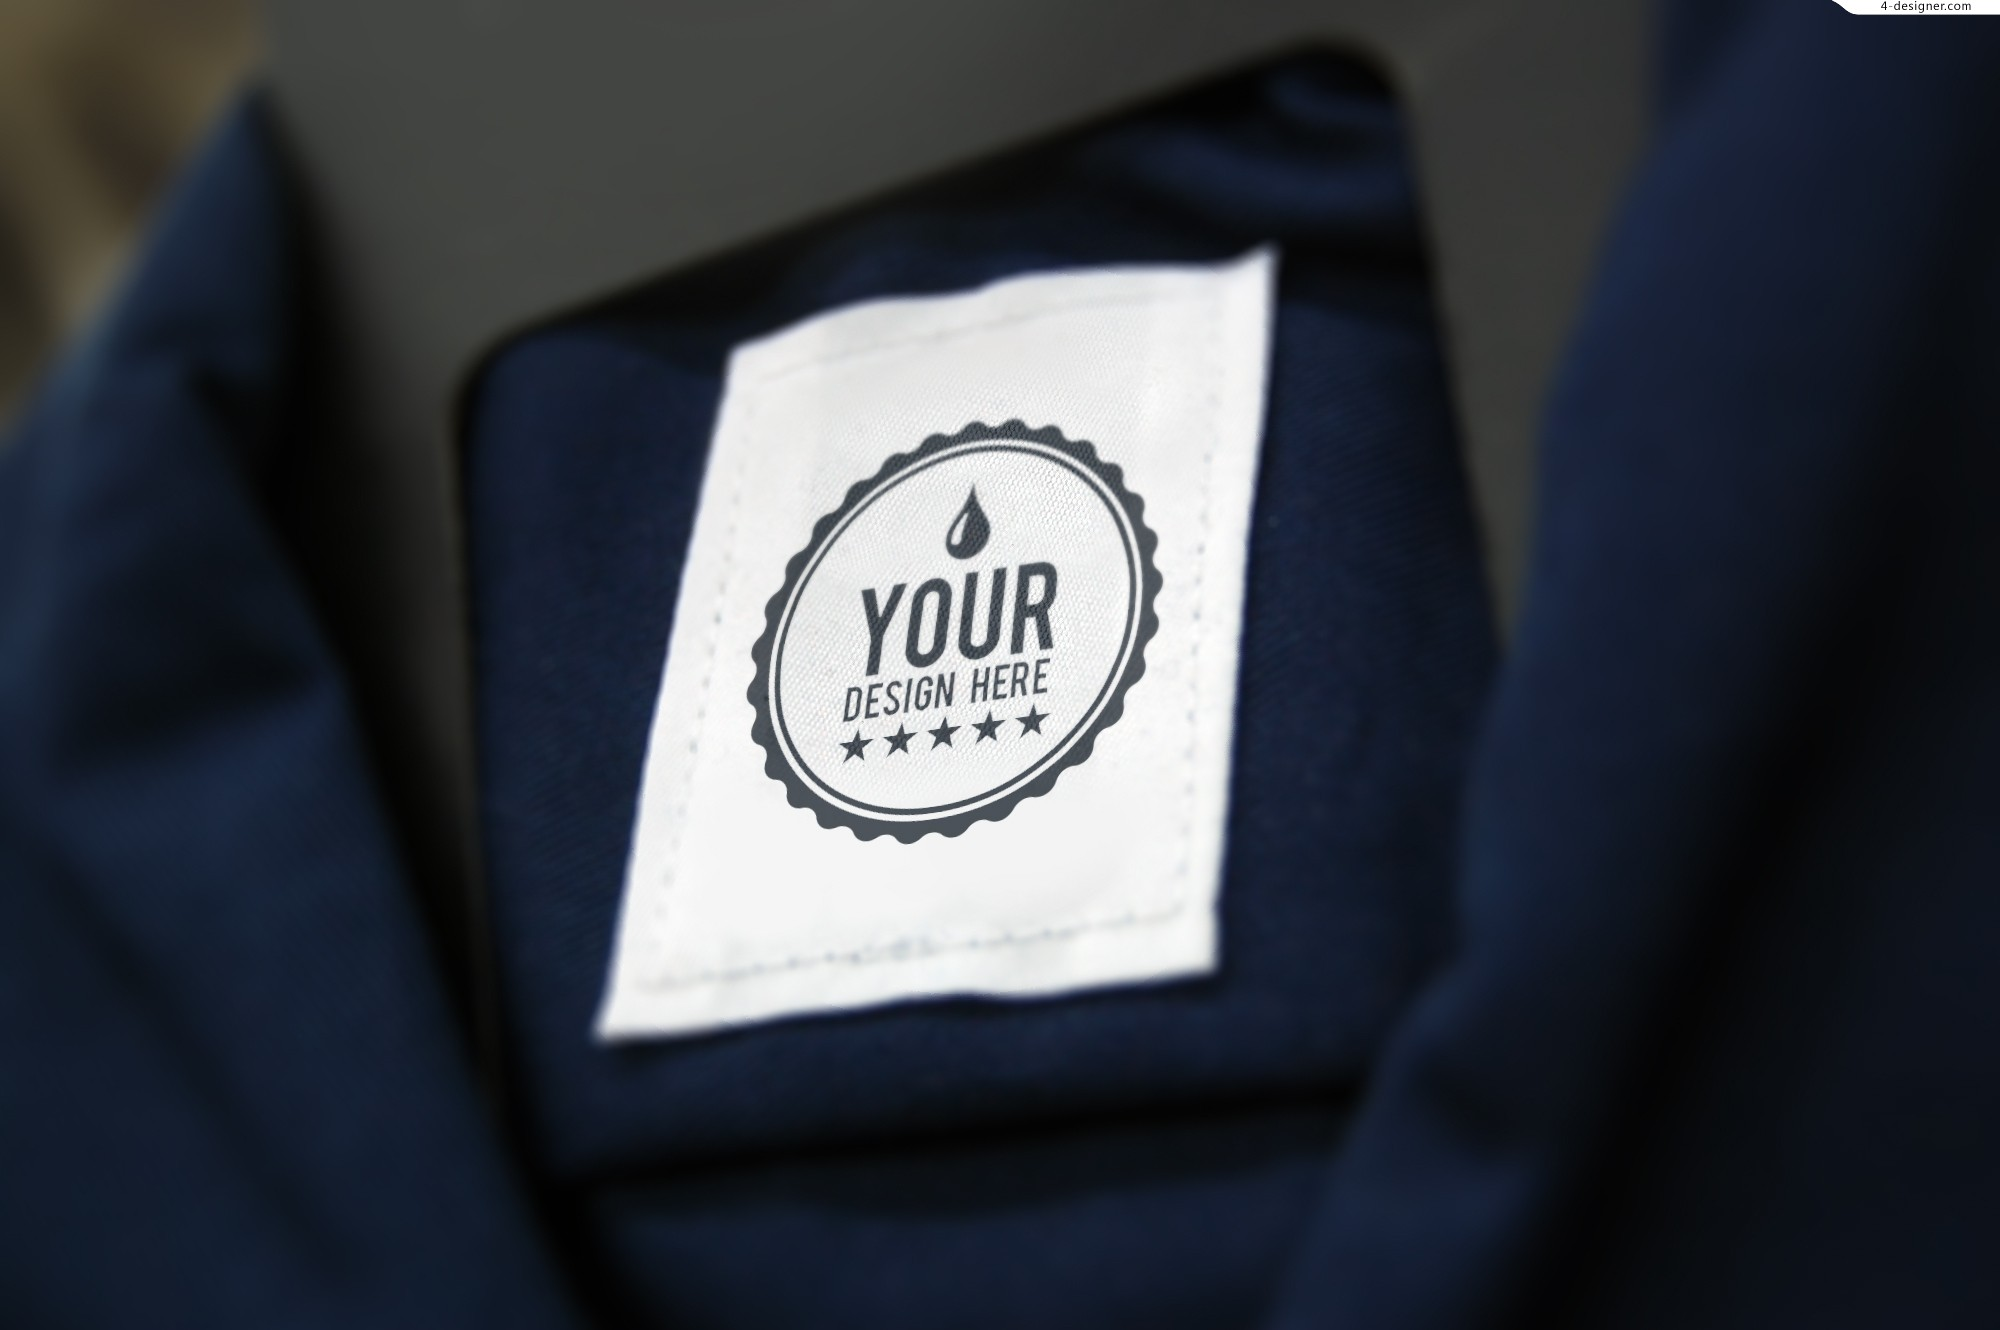 LOGO clothes label material effects show